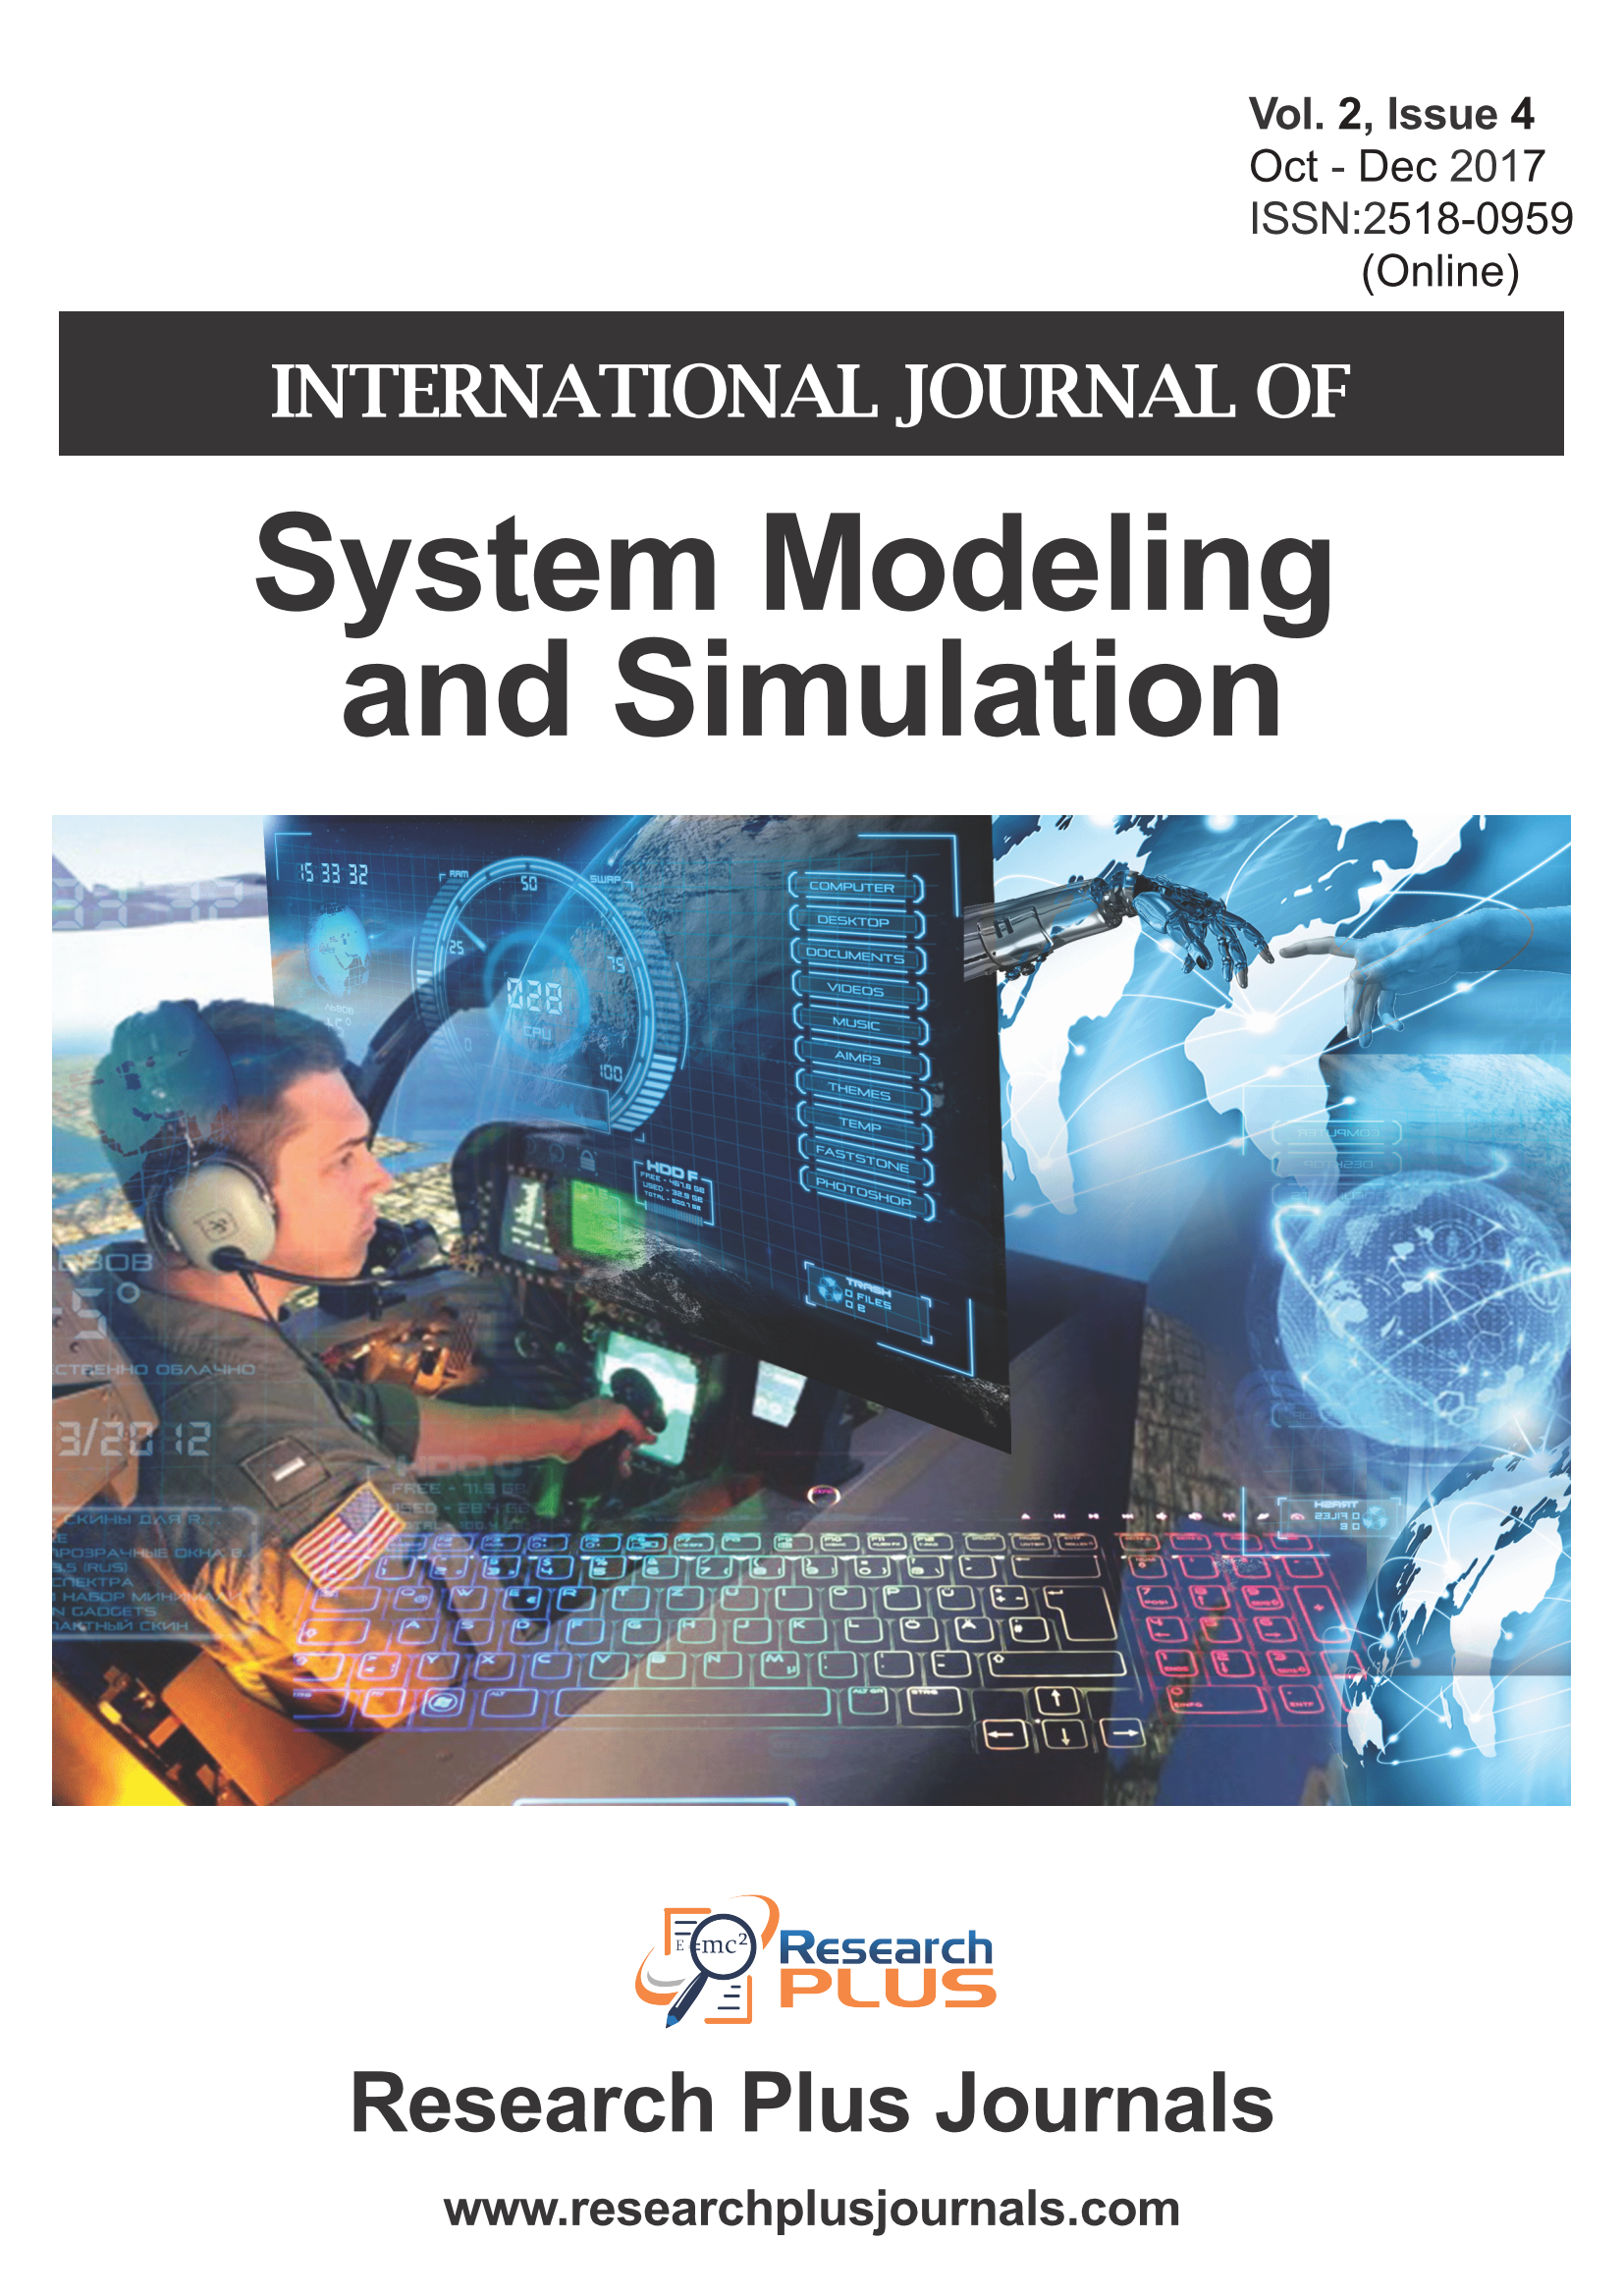 Volume 2, Issue 4, International Journal of System Modeling and Simulation (IJSMS)  (Online ISSN: 2518-0959)